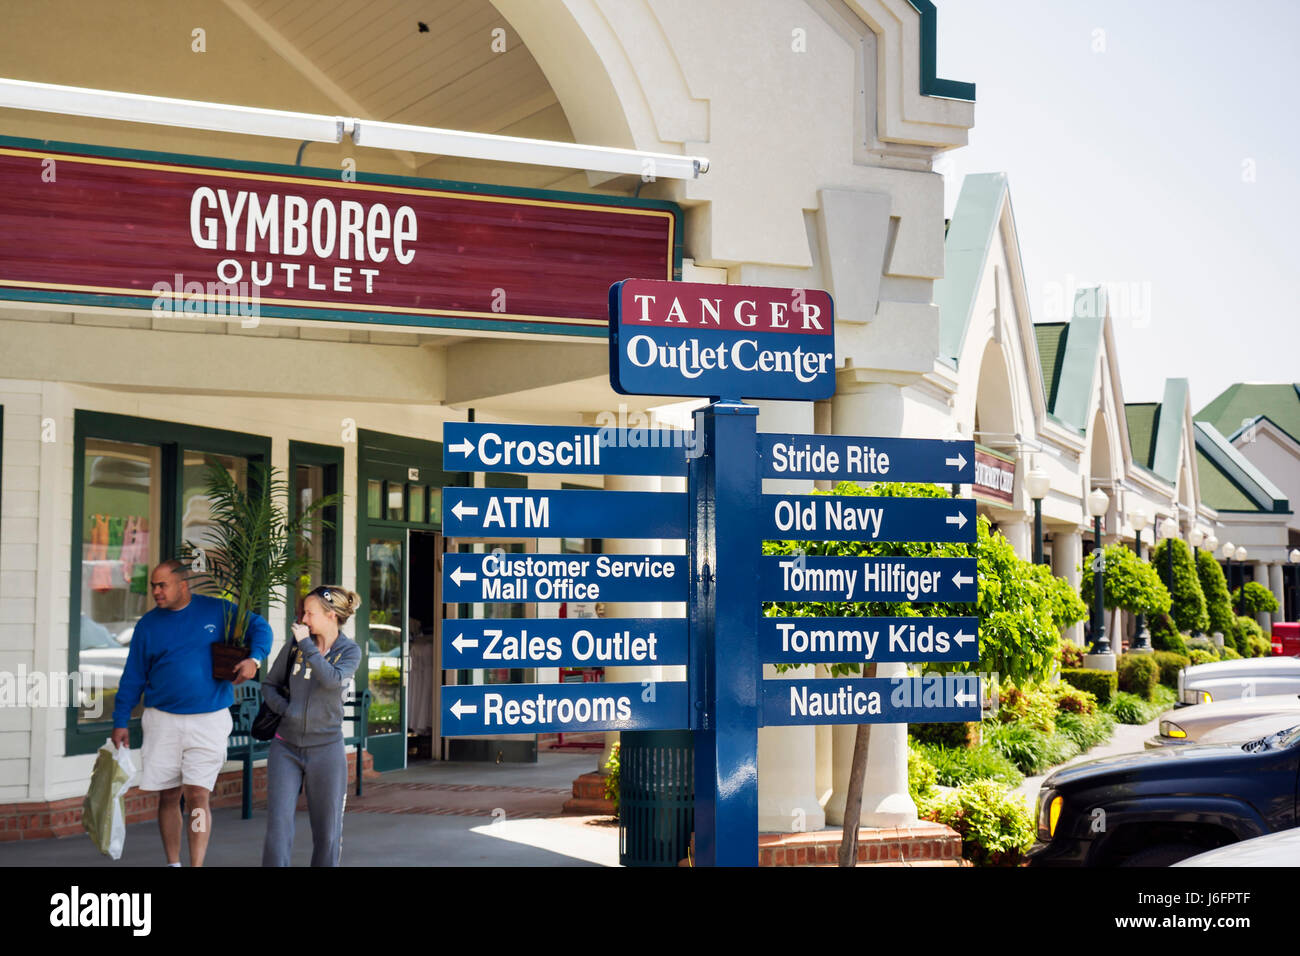 Man Cave Store Tanger Outlets : Bargain s stock photos images alamy